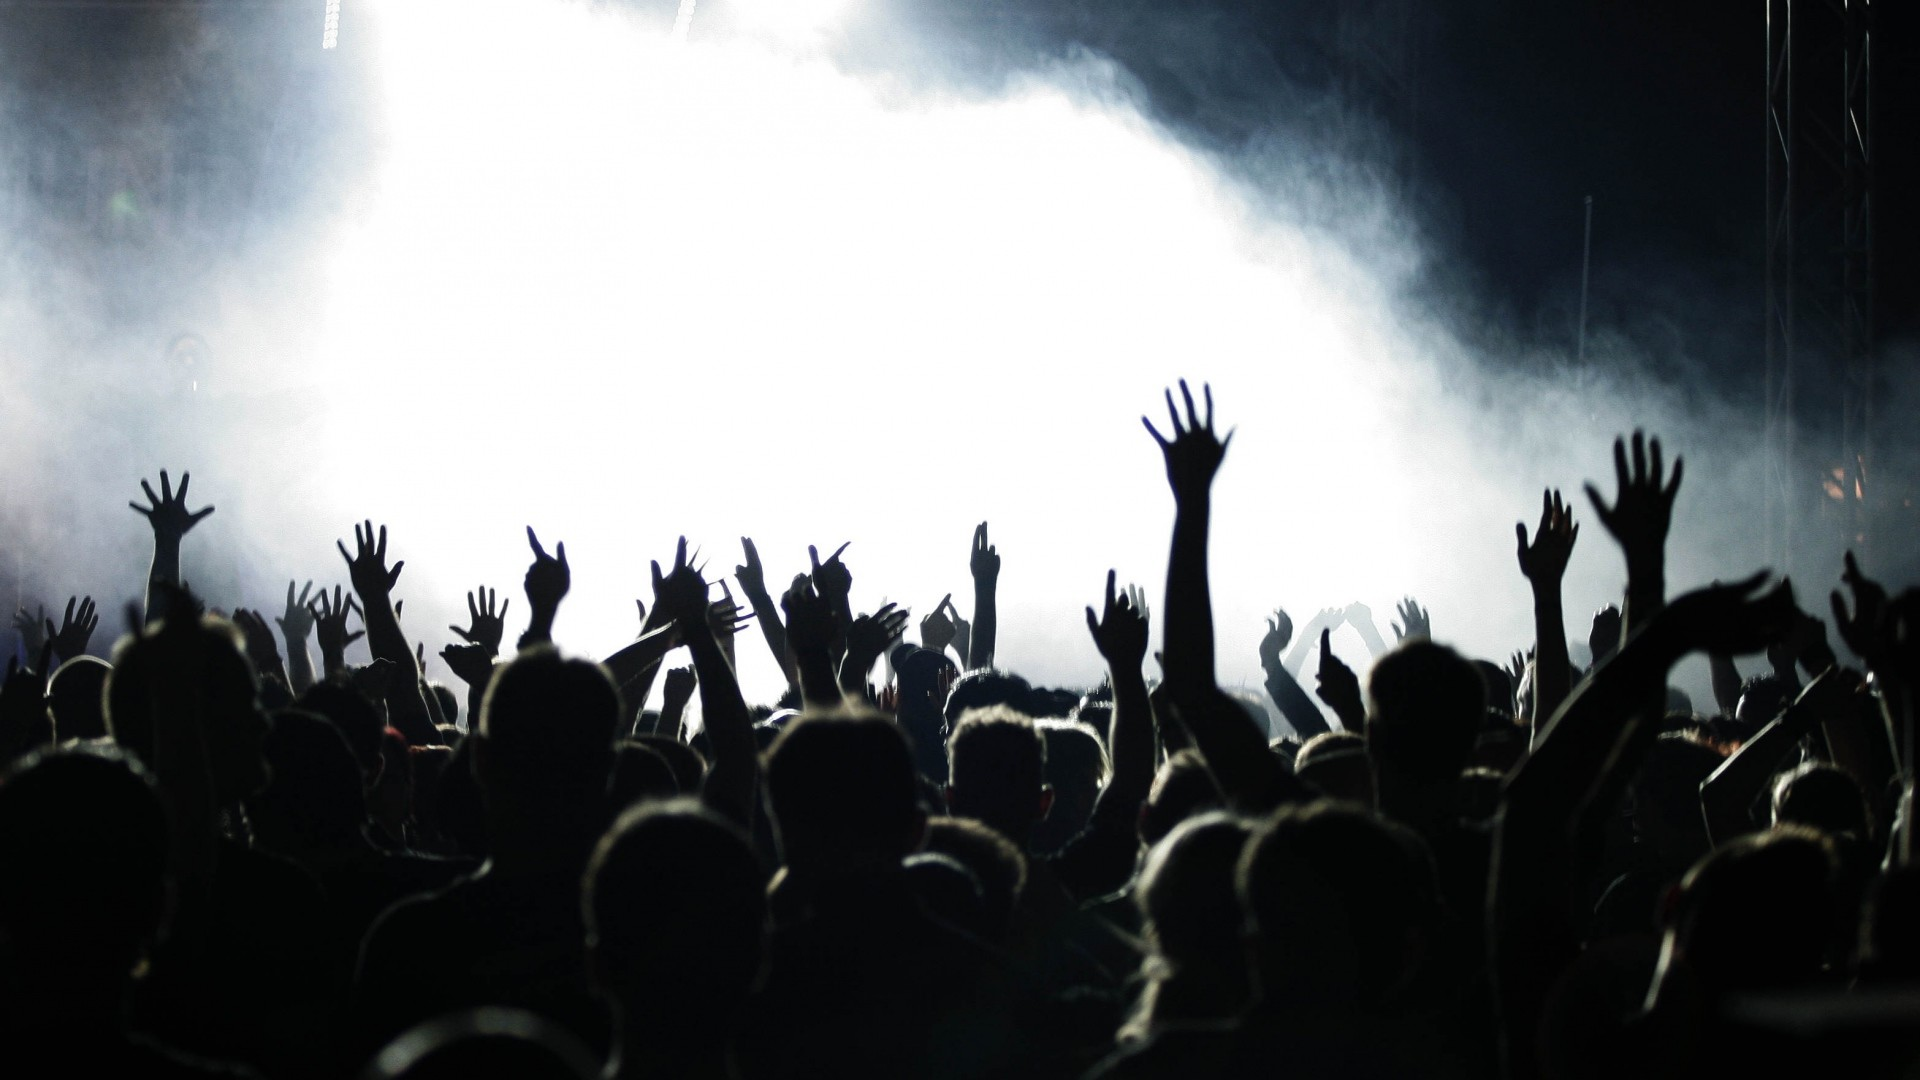 Download Wallpaper people, hands, concert, music, crowd Full HD  1080p HD Background